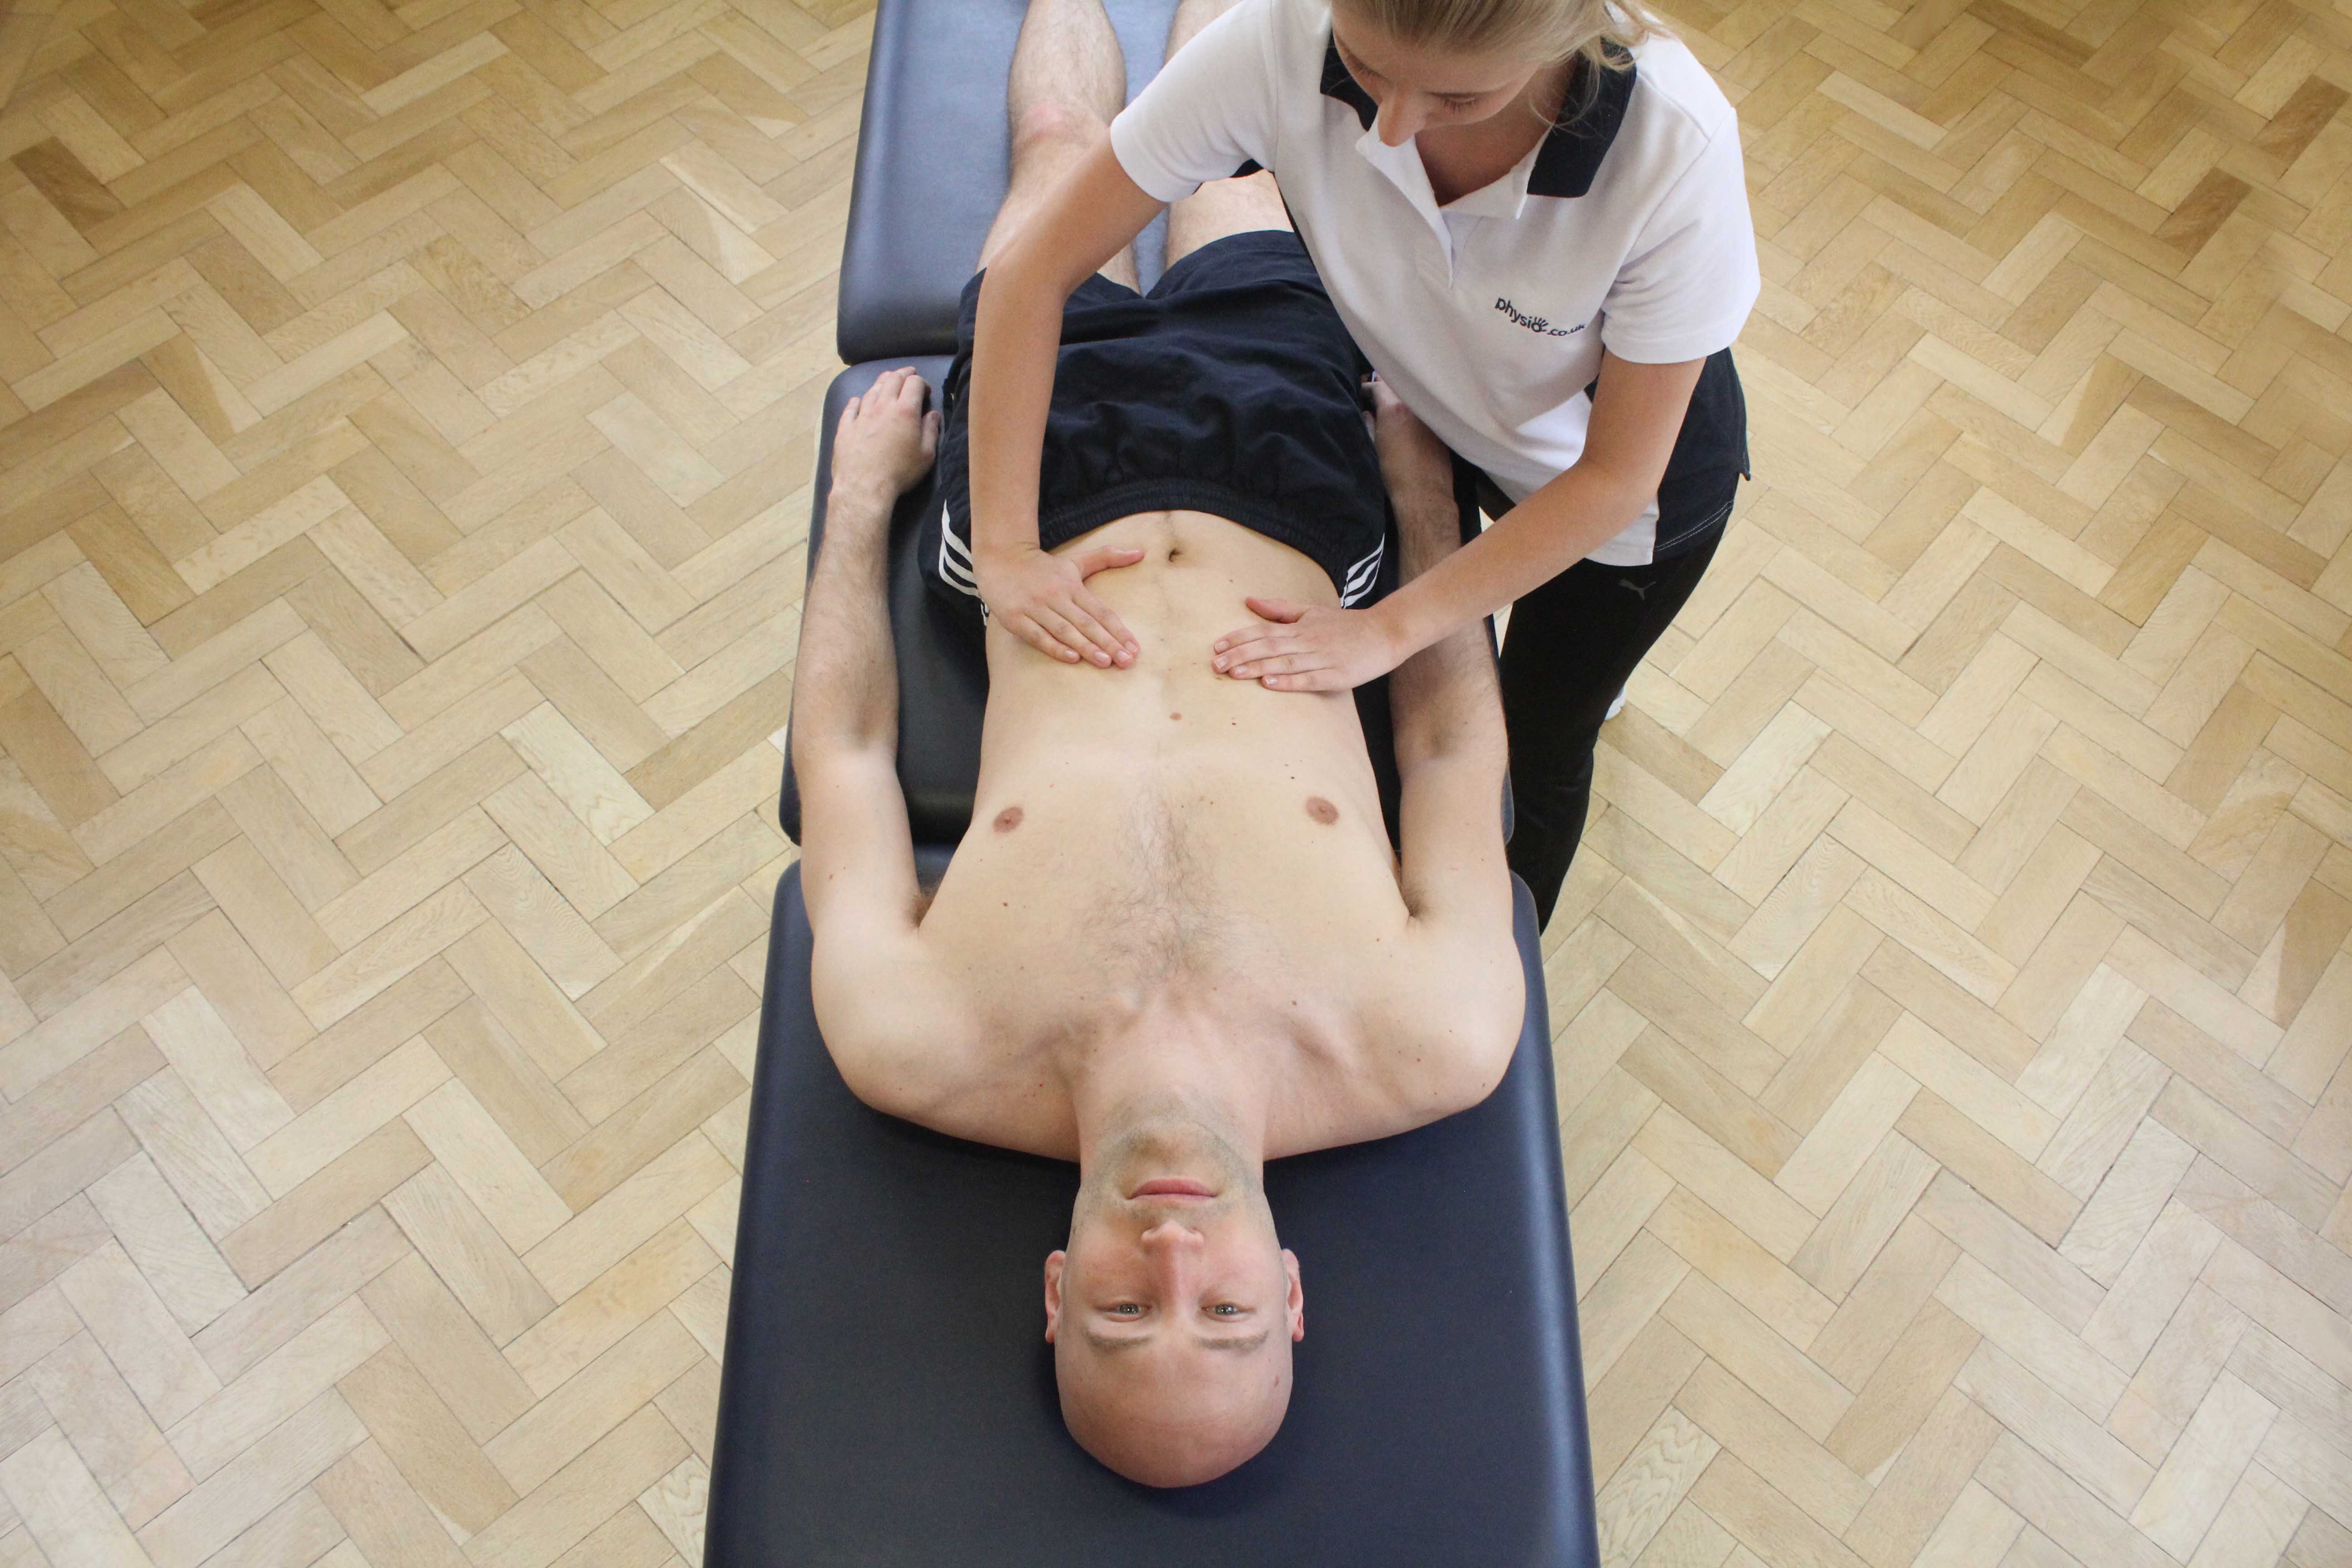 Soft tissue massage of the abdominals by a specialist massage therapist